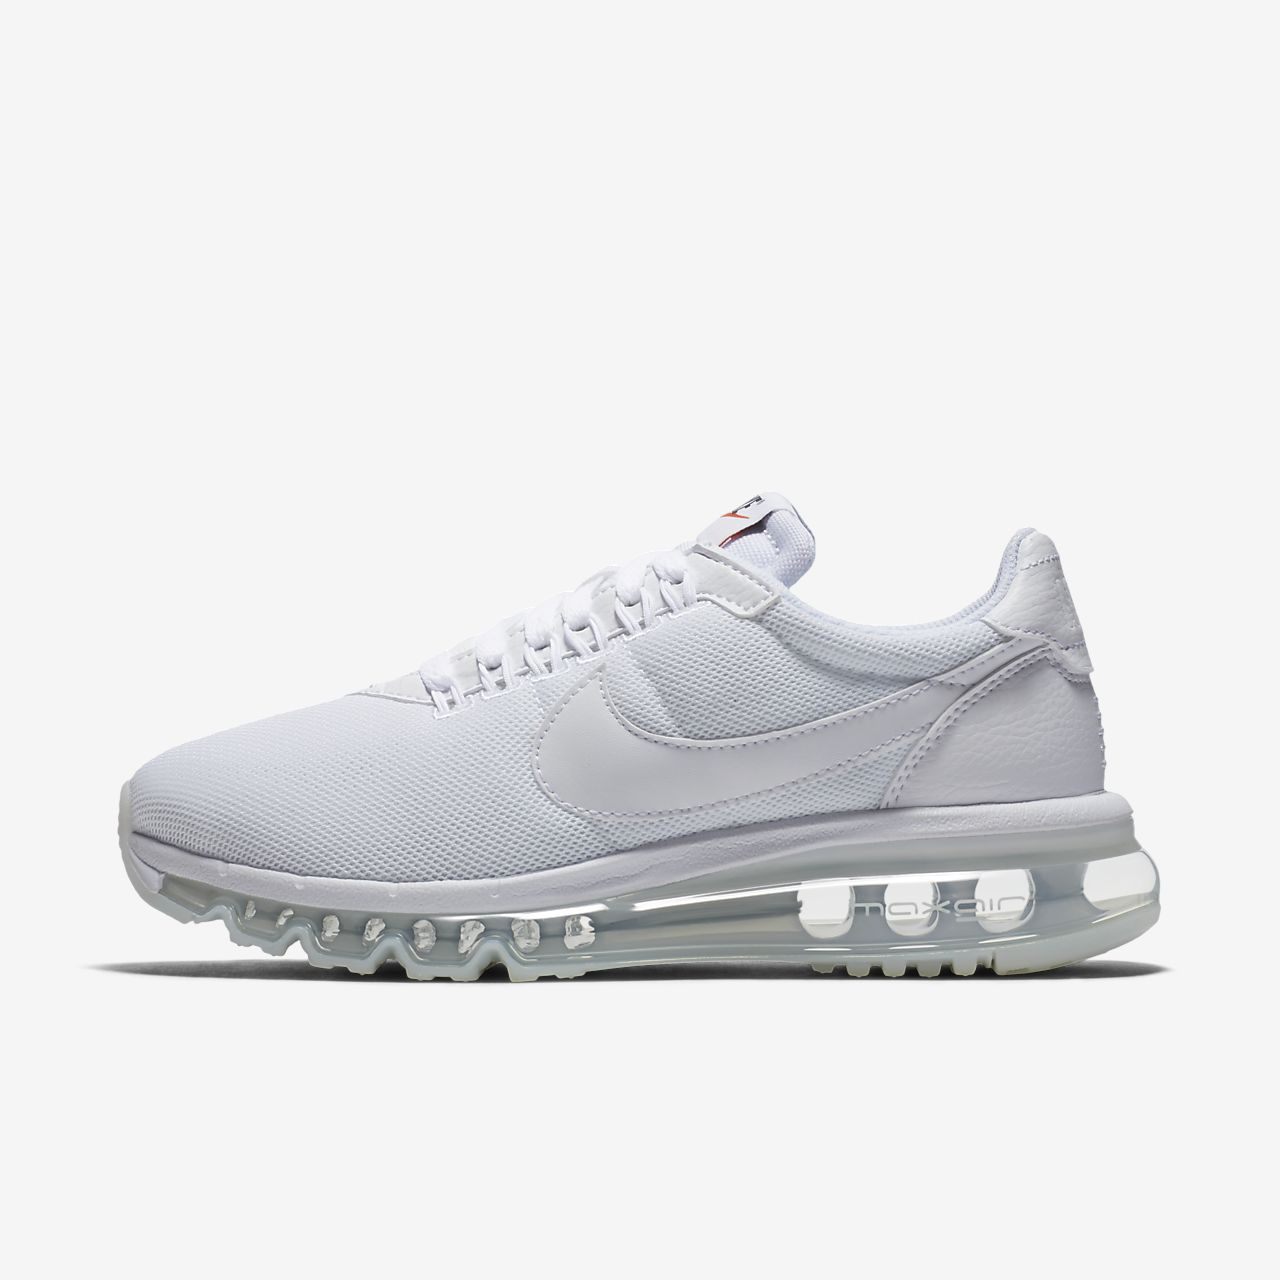 reputable site 27a08 21eef Nike Air Max LD-Zero Women's Shoe